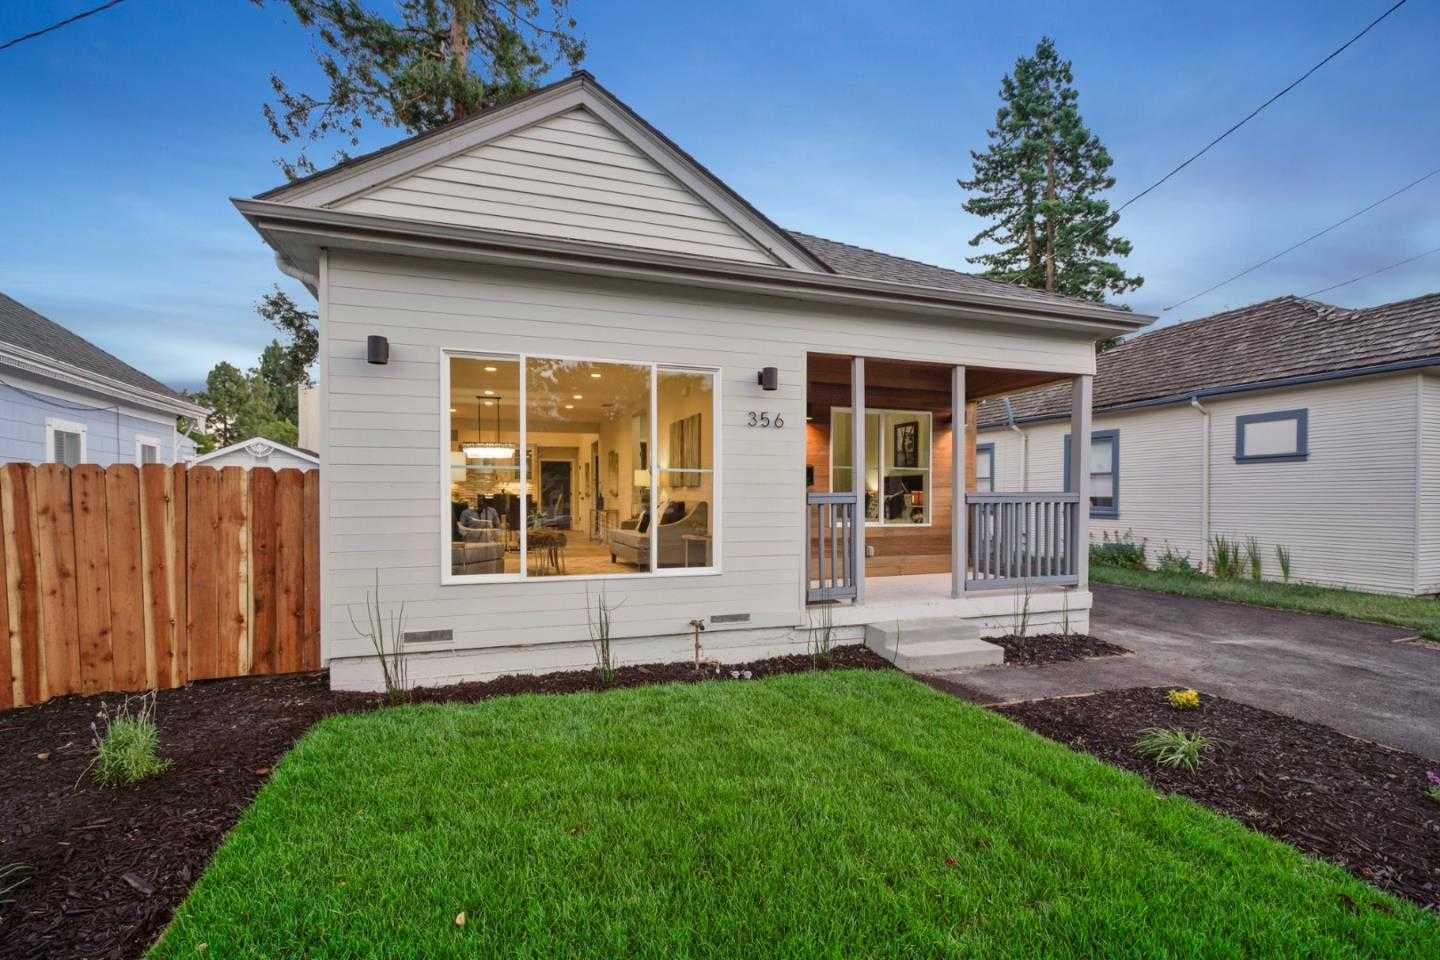 $1,599,000 - 3Br/2Ba -  for Sale in Sunnyvale